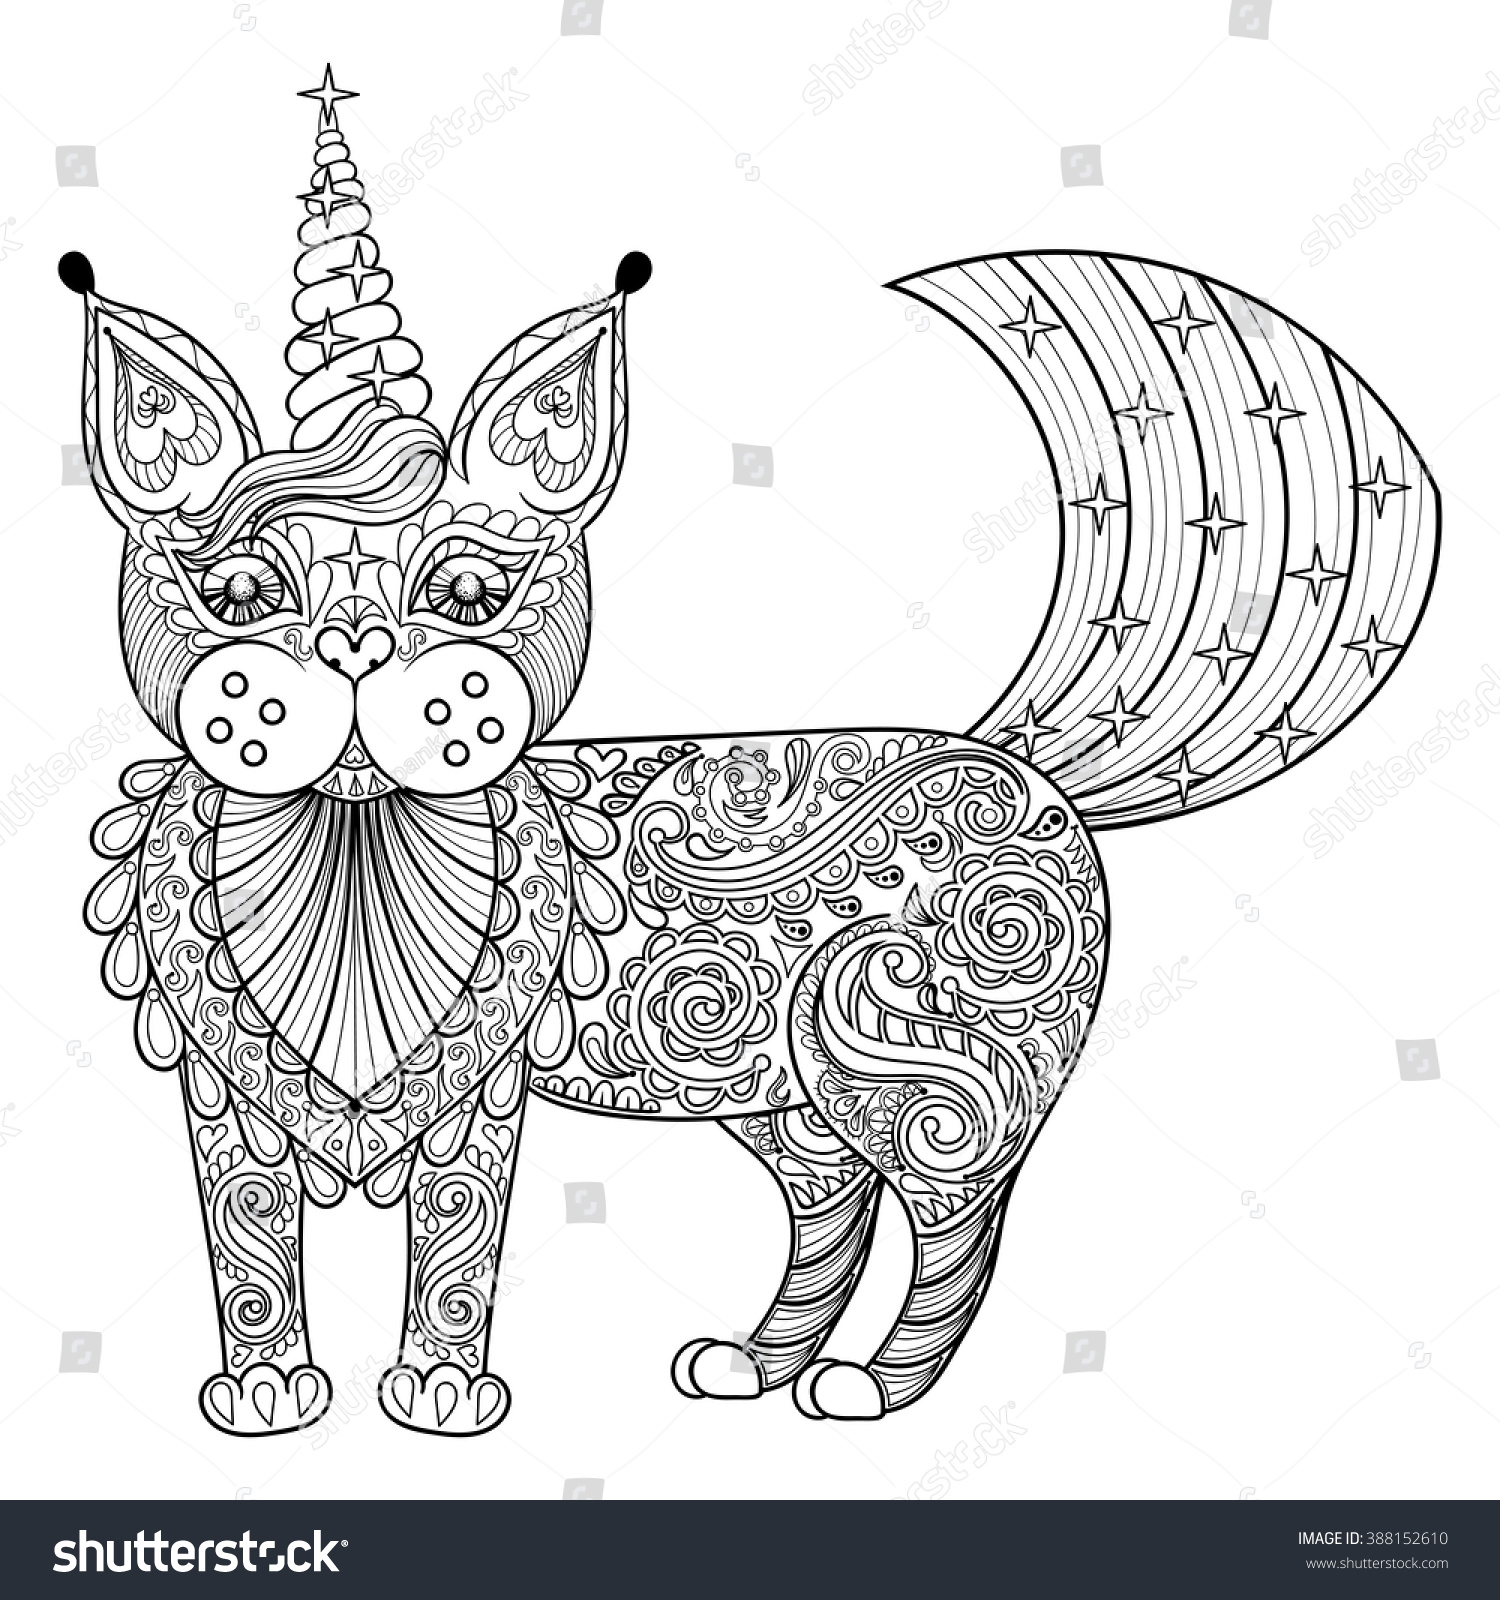 Coloring Pages For Adults Unicorns - Vector zentangle magic cat unicorn black print for adult anti stress coloring page hand